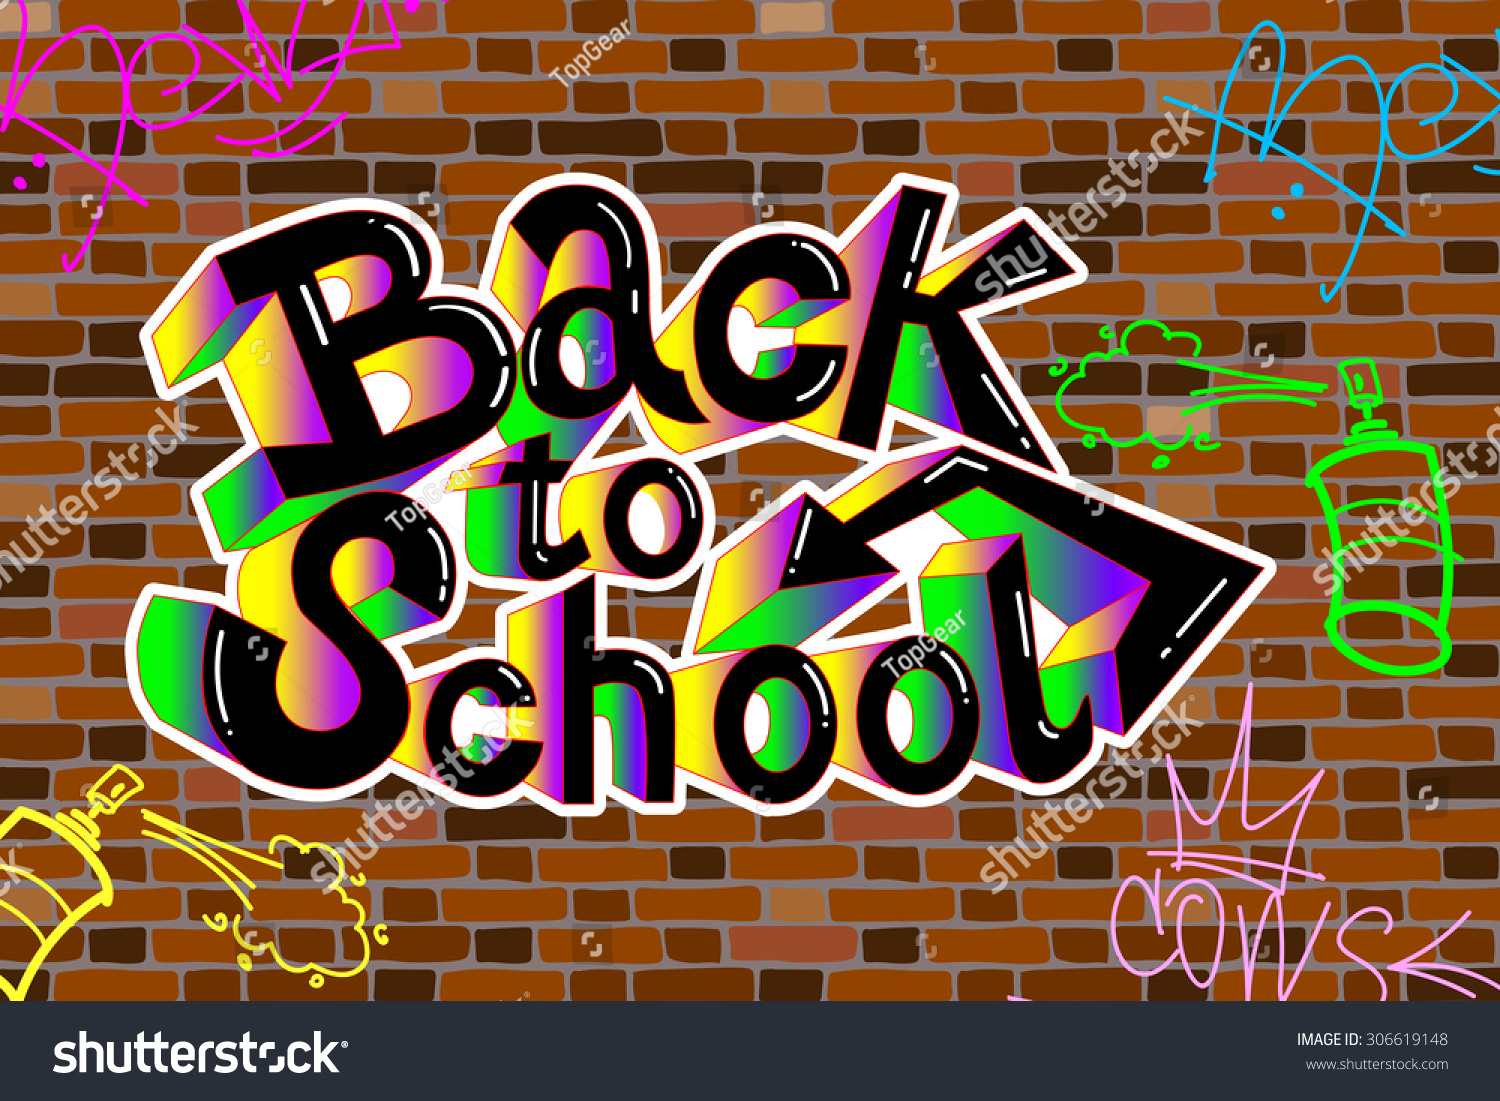 Back school writing graffiti on brick stock vector for Back to school wall decoration